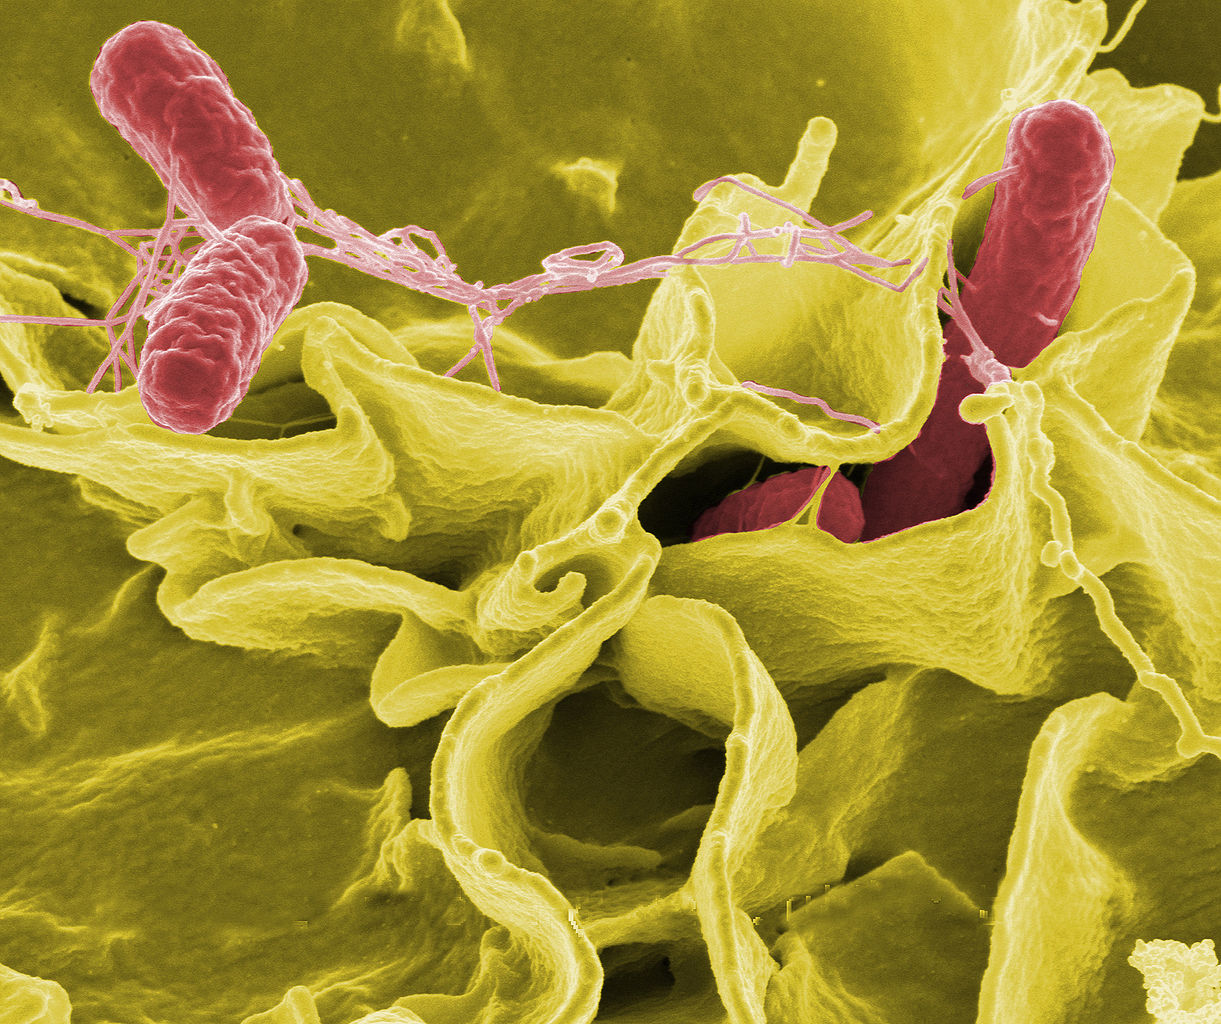 Salmonella outbreak tied to dog treats expands to 27 states